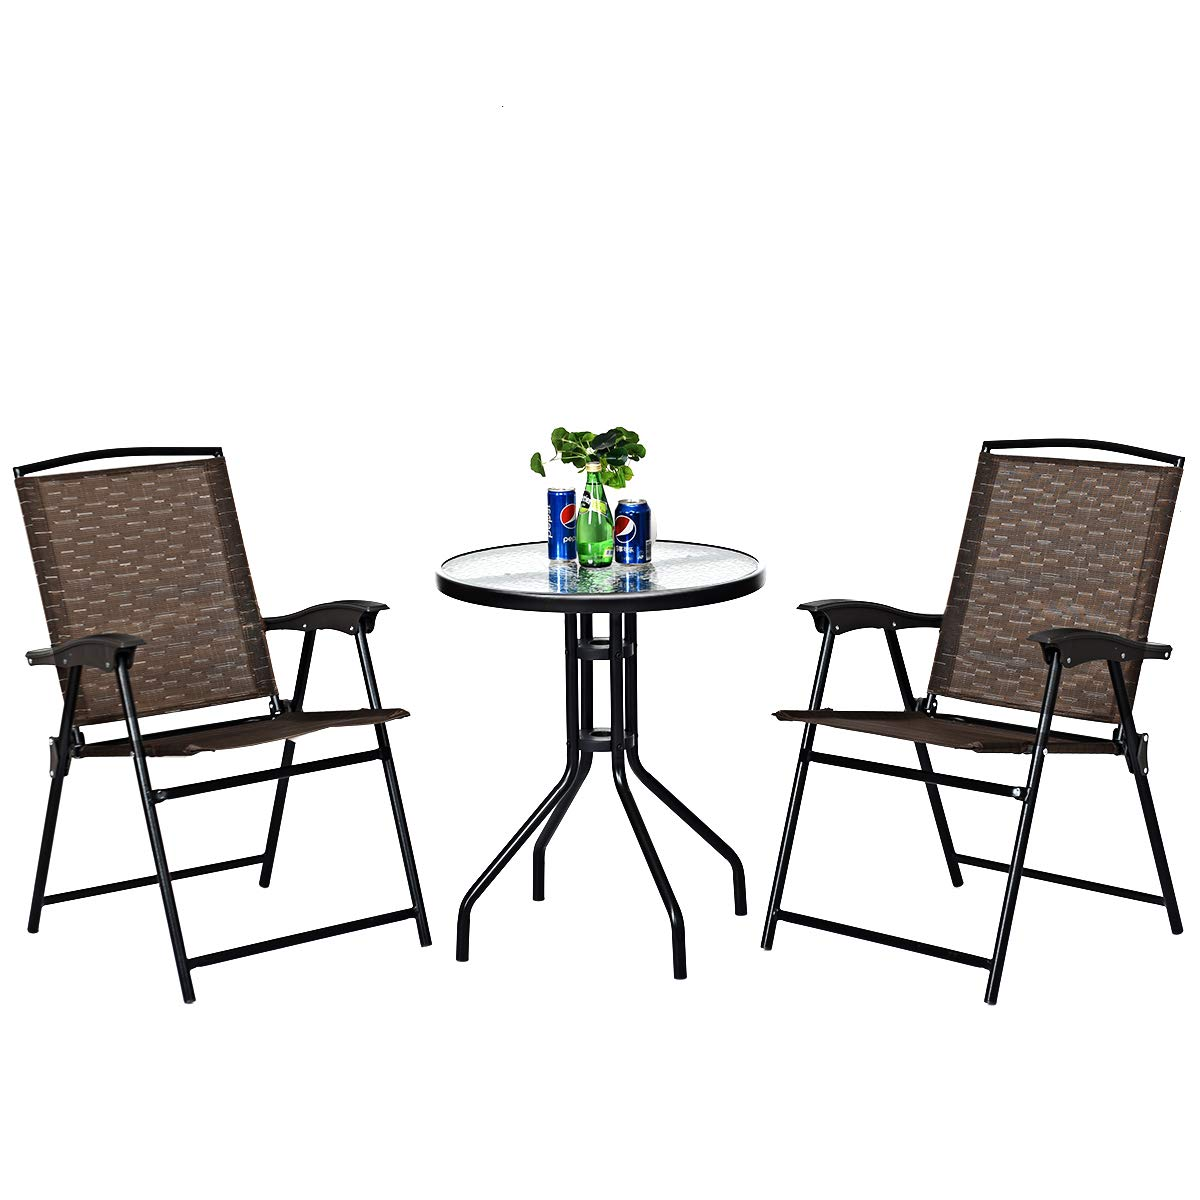 Goplus 3 Piece Bistro Set All Weather Patio Furniture Indoor Outdoor Garden Round Table and Folding Chairs